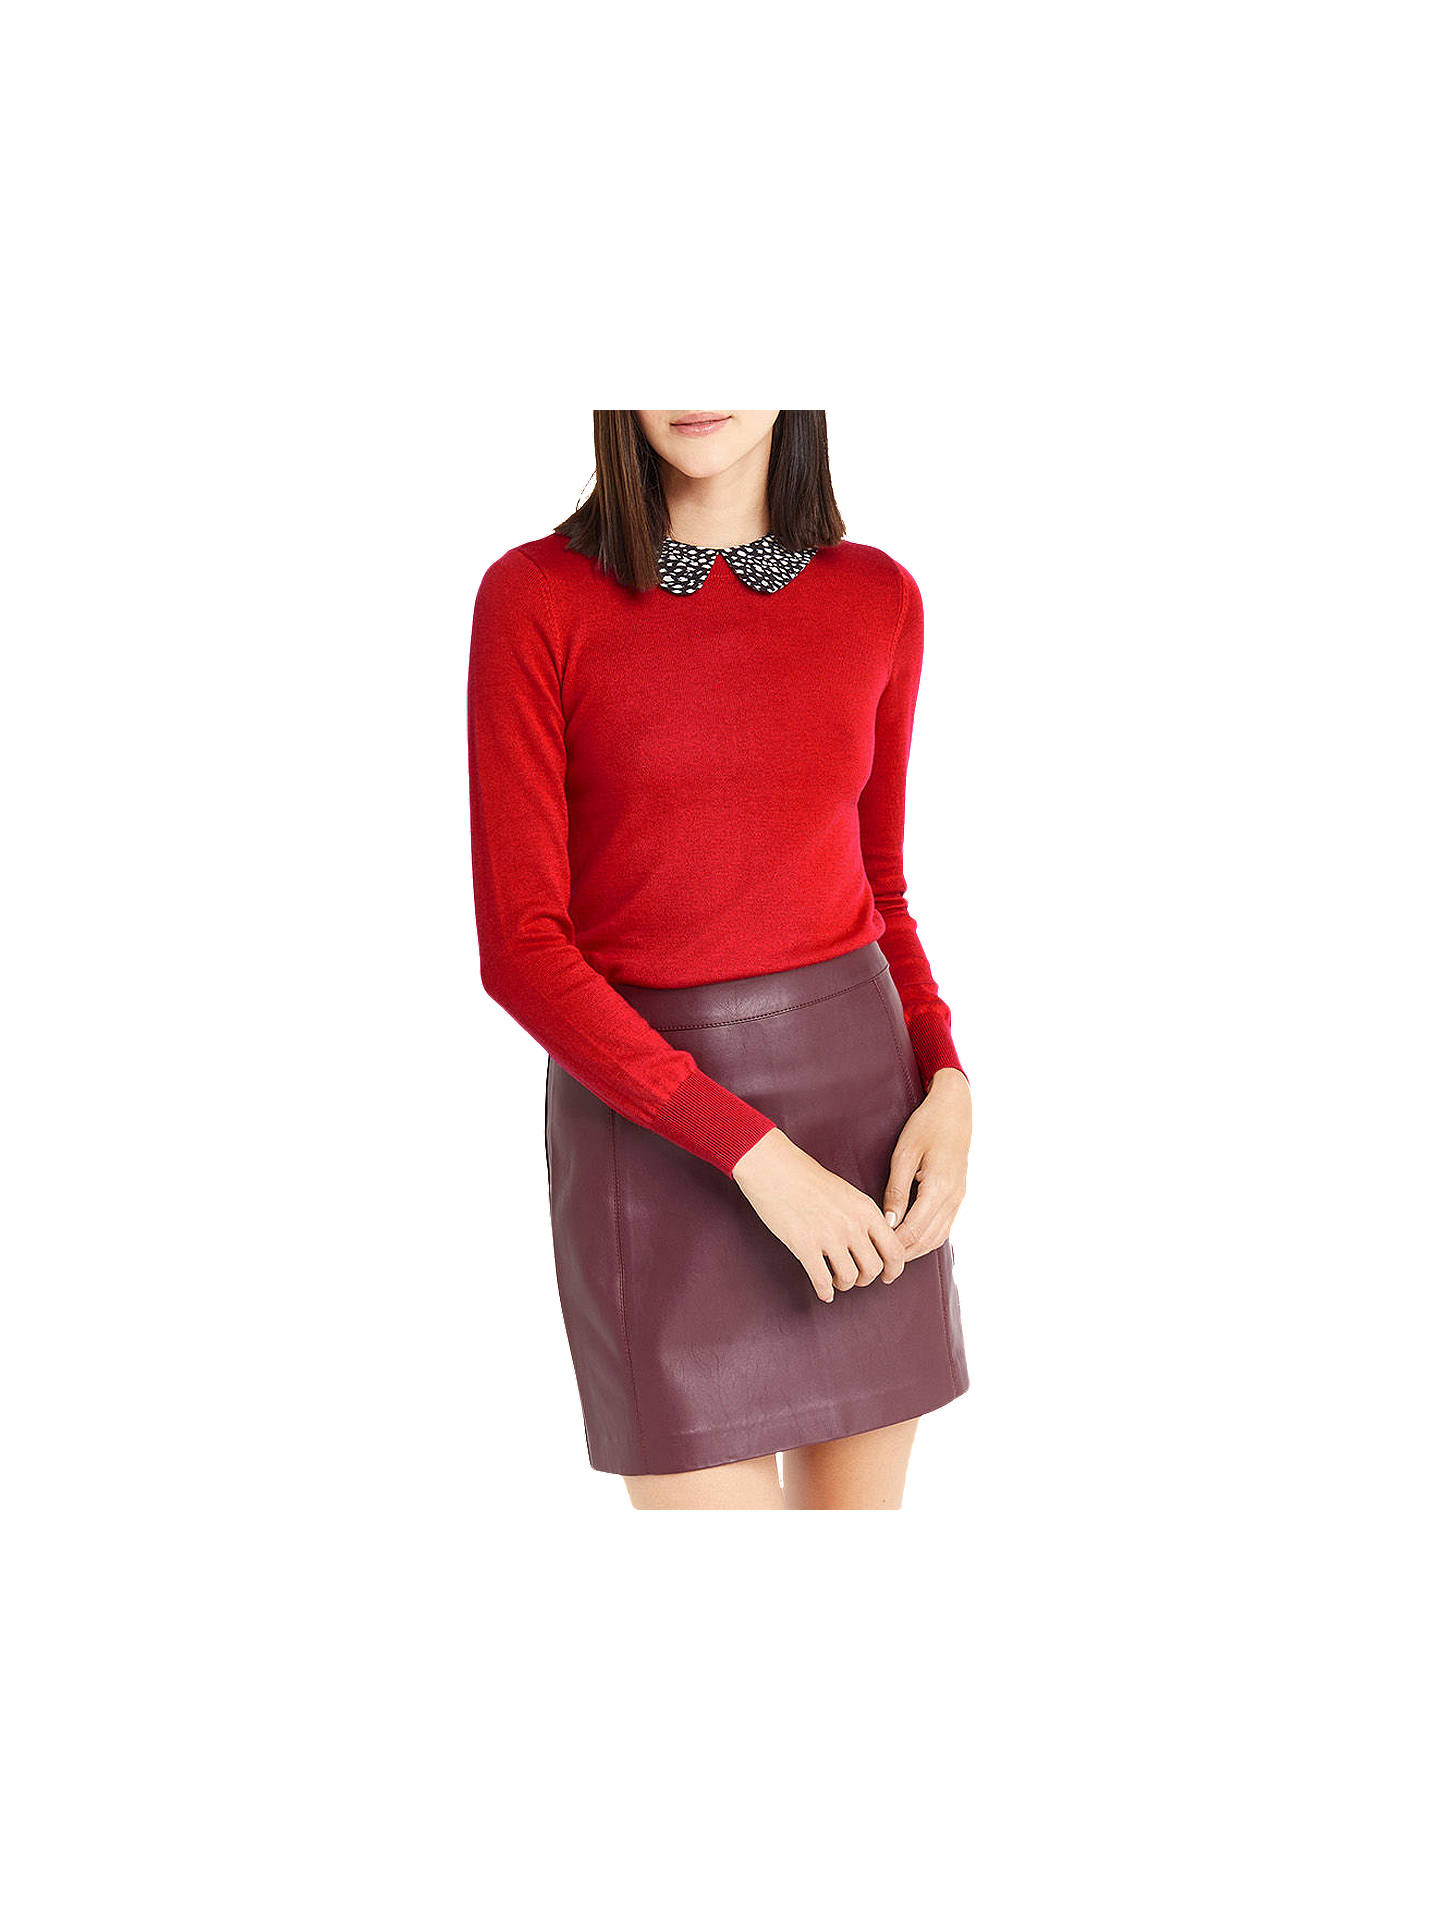 BuyOasis Animal Printed Collar Jumper, Rich Red, XS Online at johnlewis.com